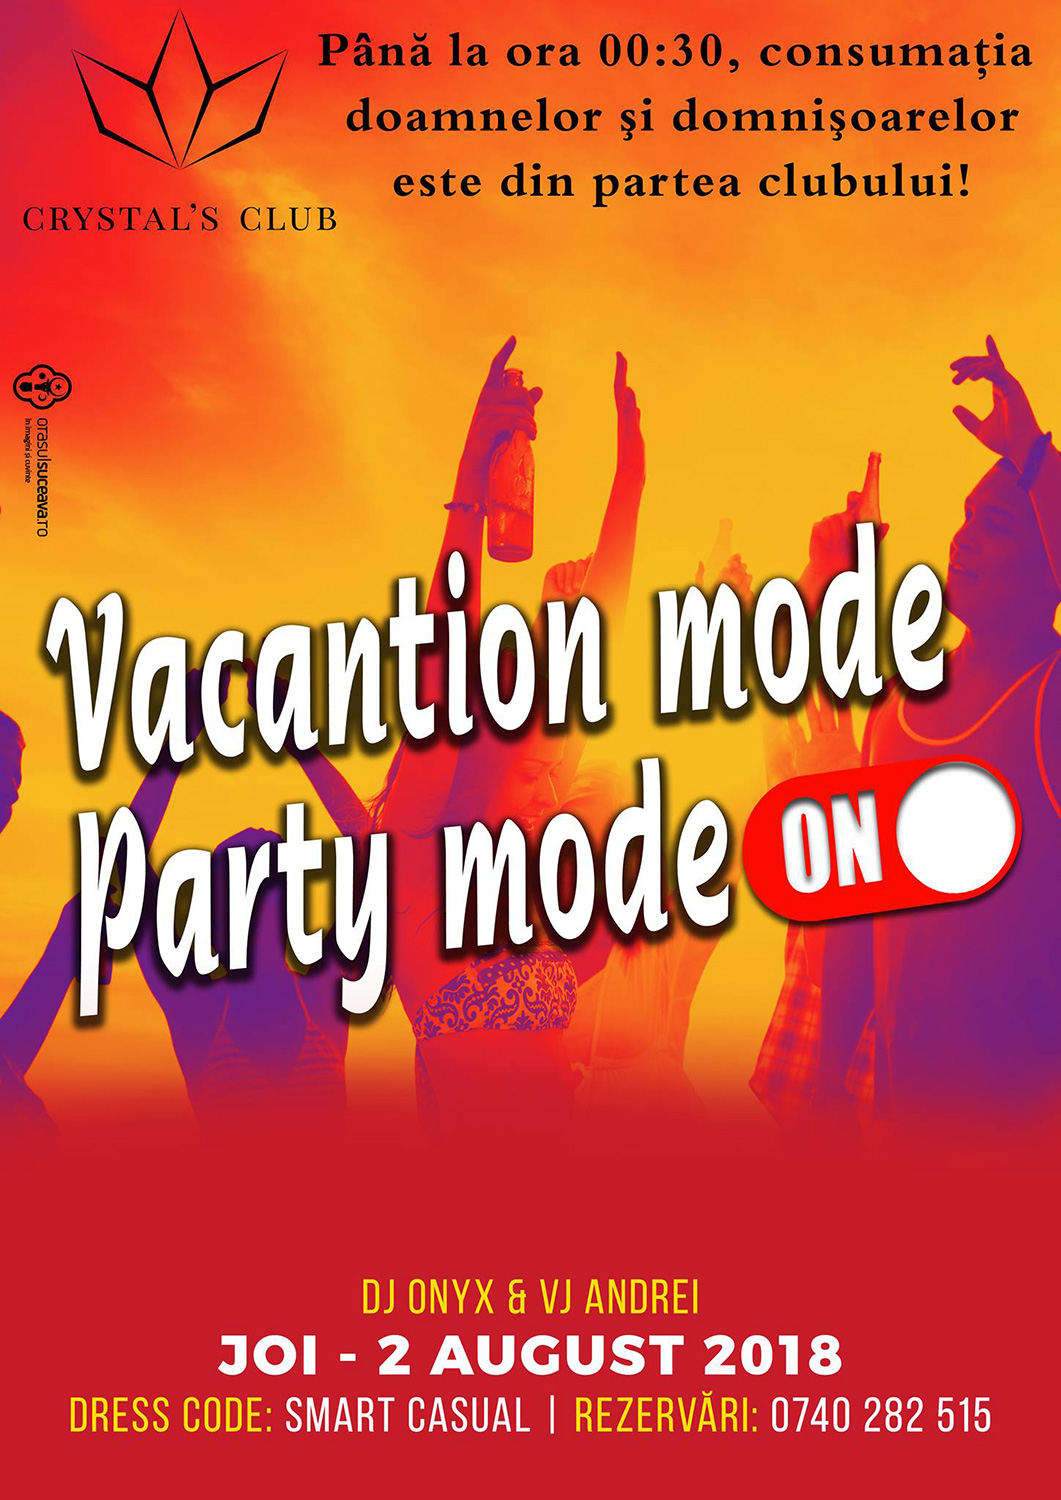 Vacantion mode – Party mode On